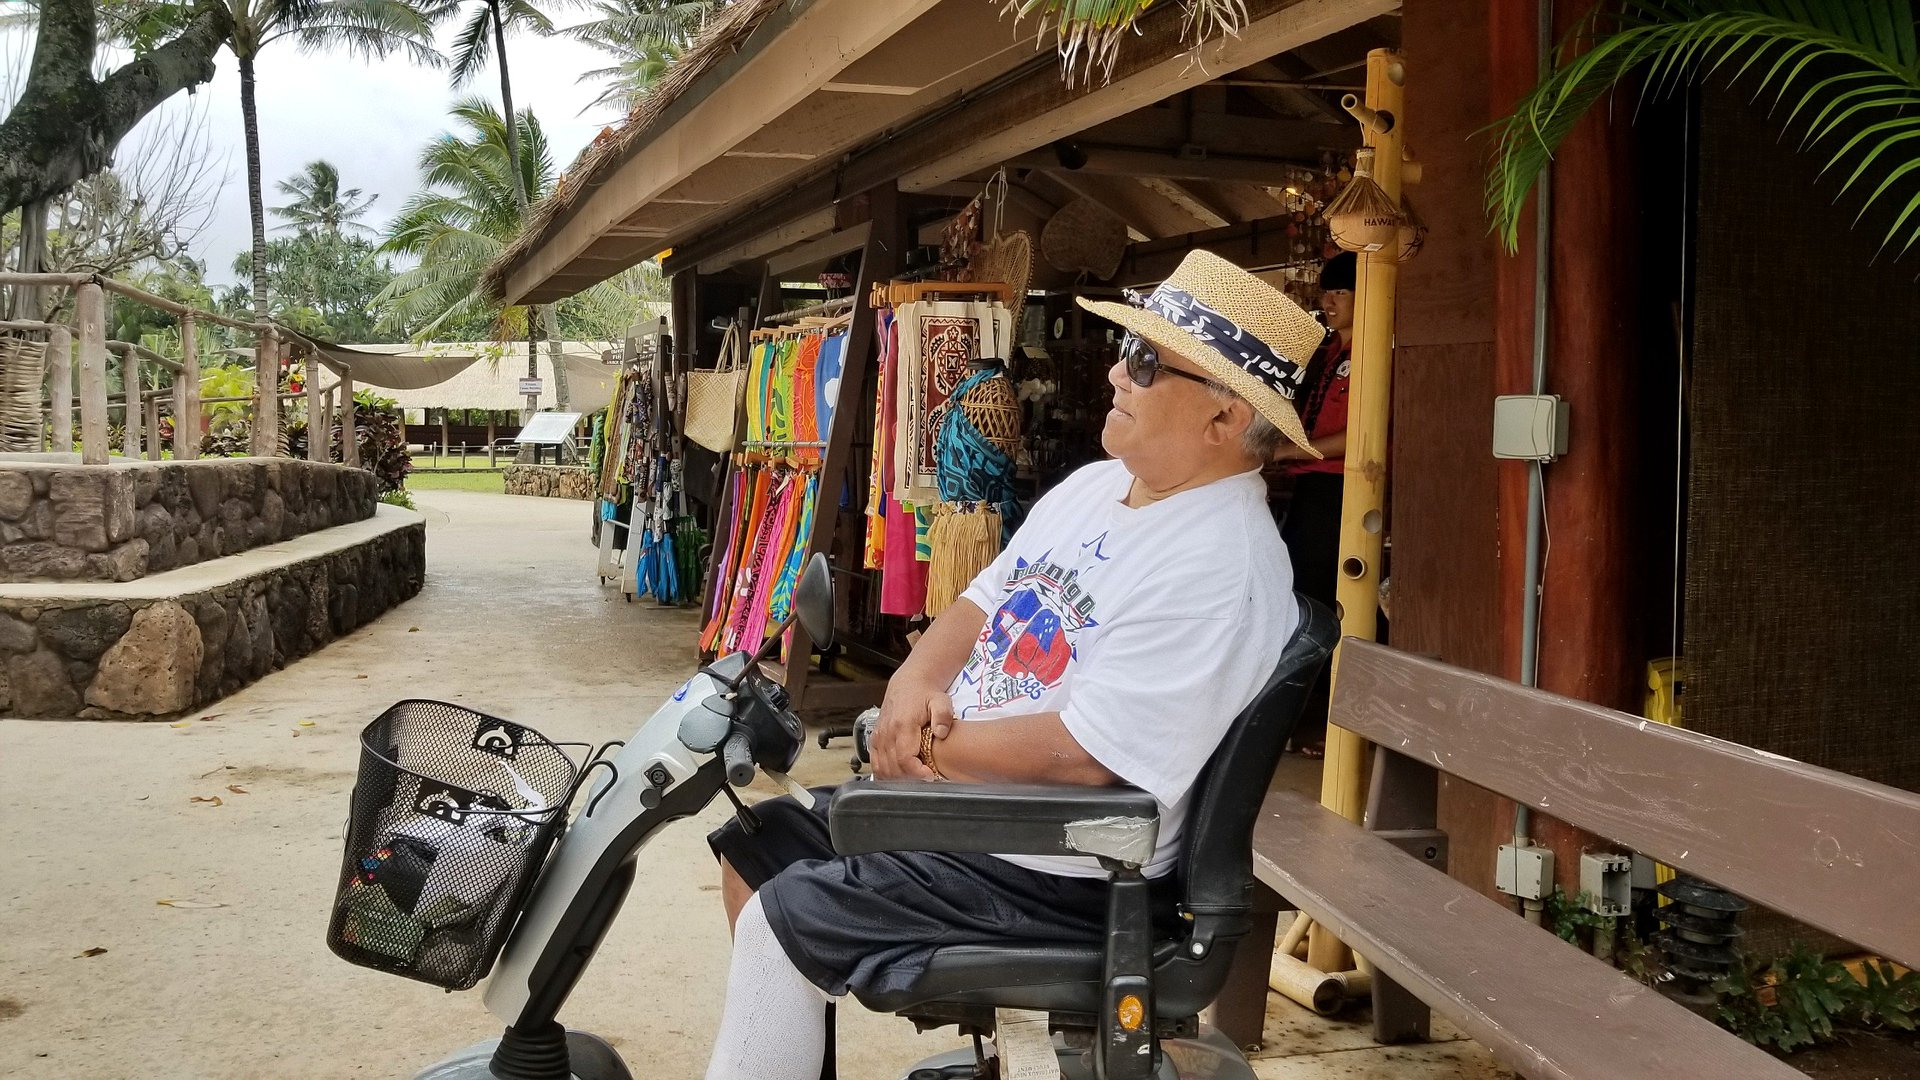 image of Pule Galeai enjoying a day at the Polynesian Cultural Center